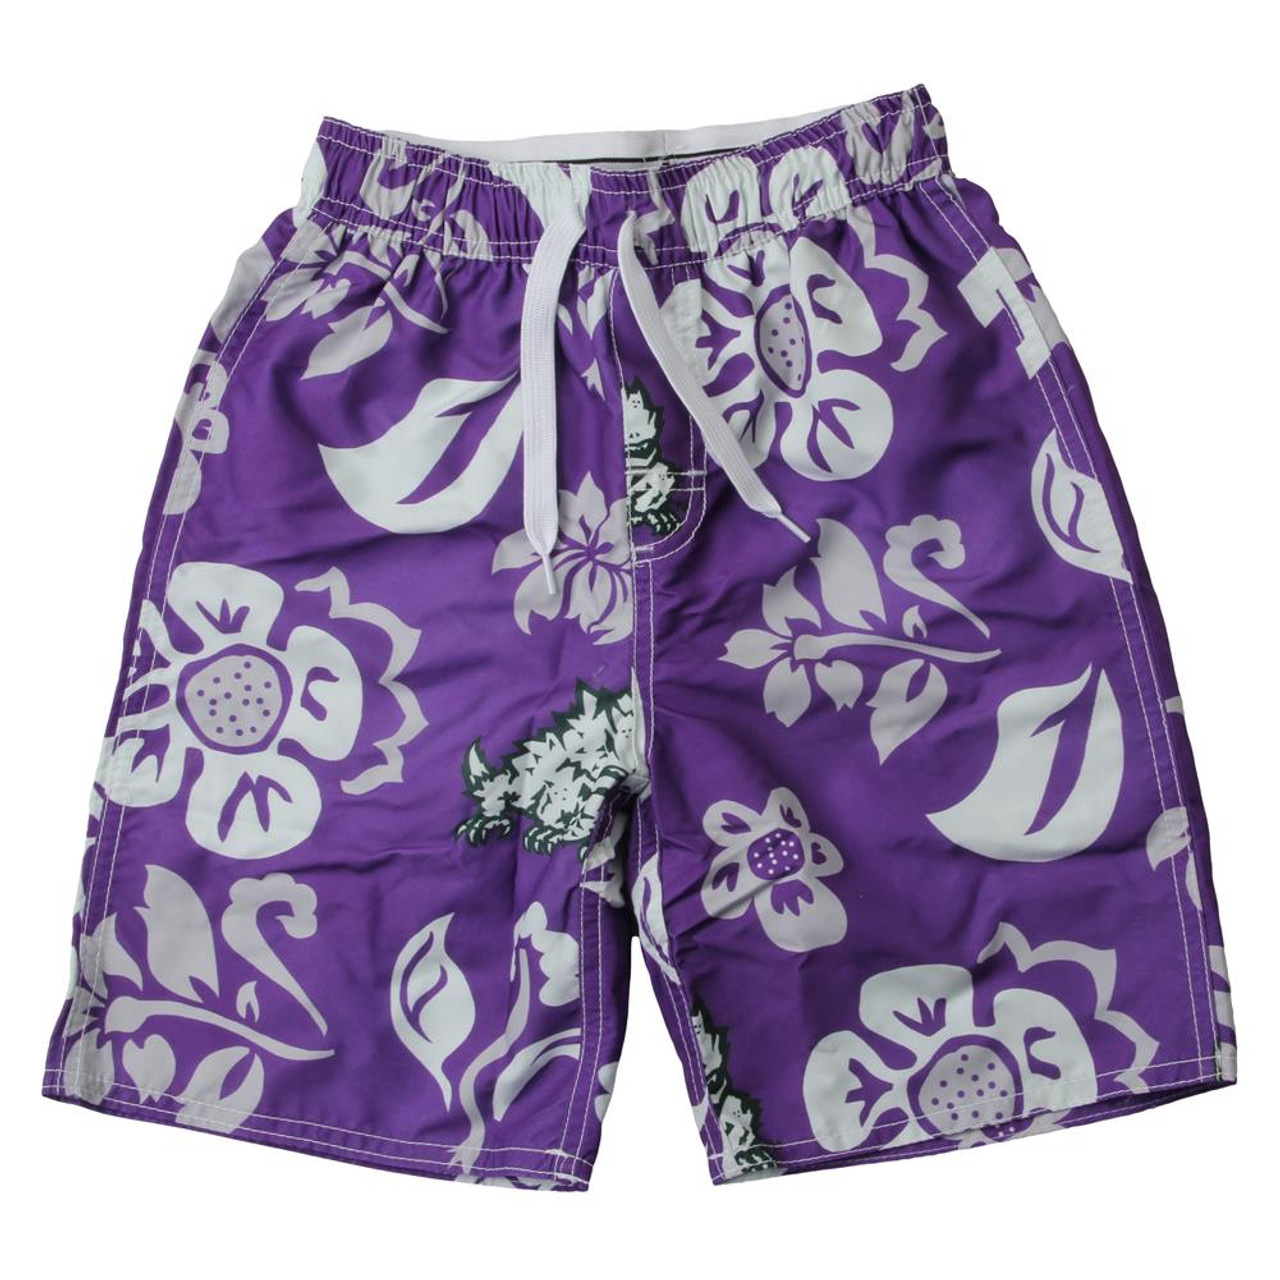 Youth TCU Texas Christian Swim Trunks Boys Floral Swim Shorts